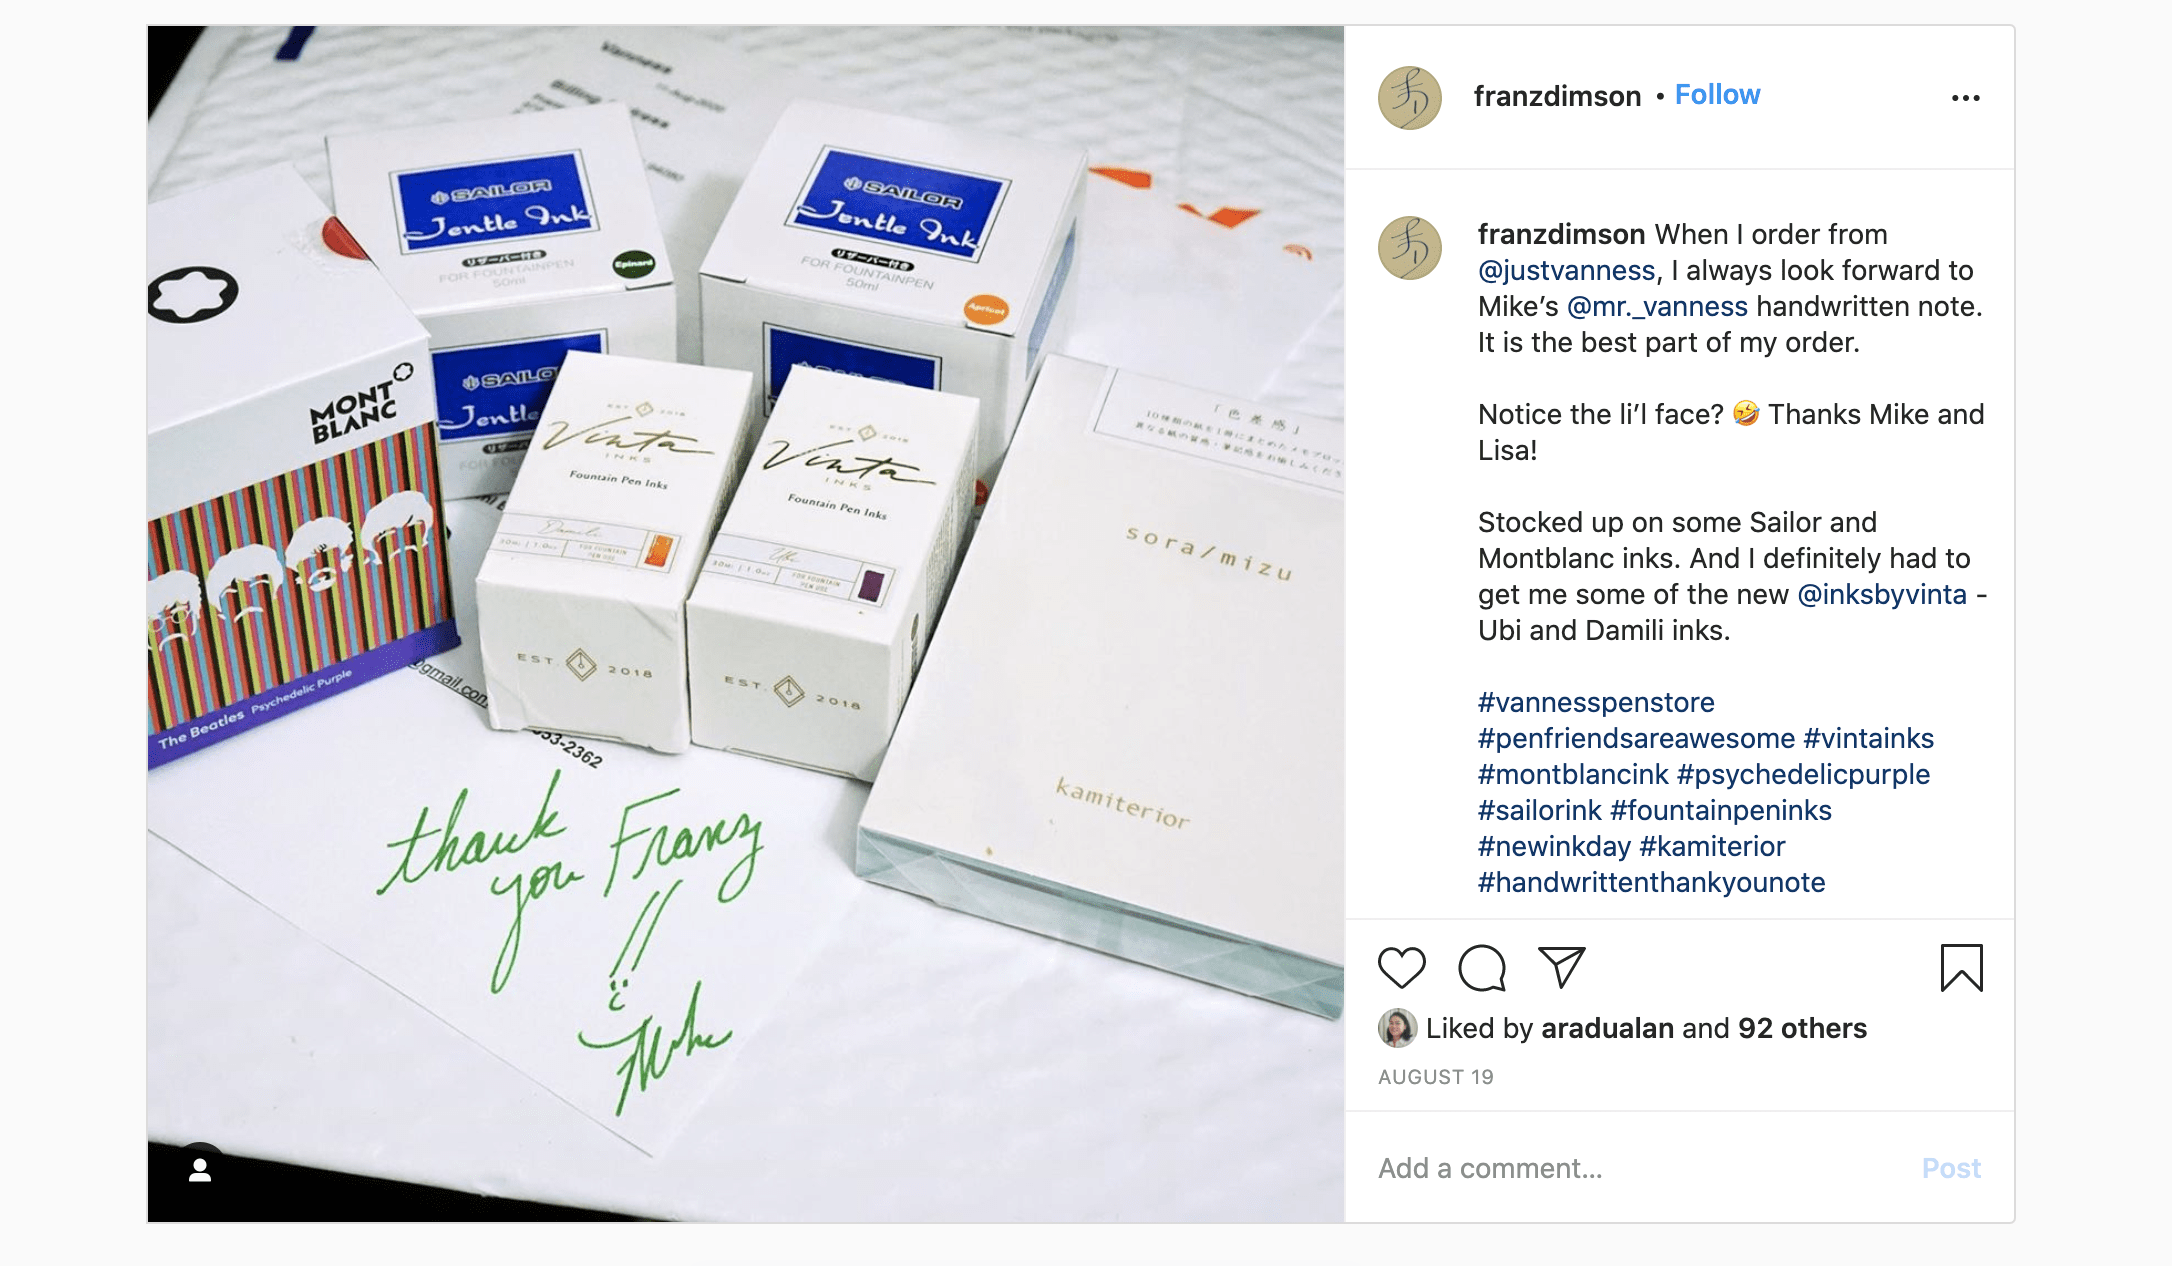 A customer posting about a handwritten thank you note on Instagram